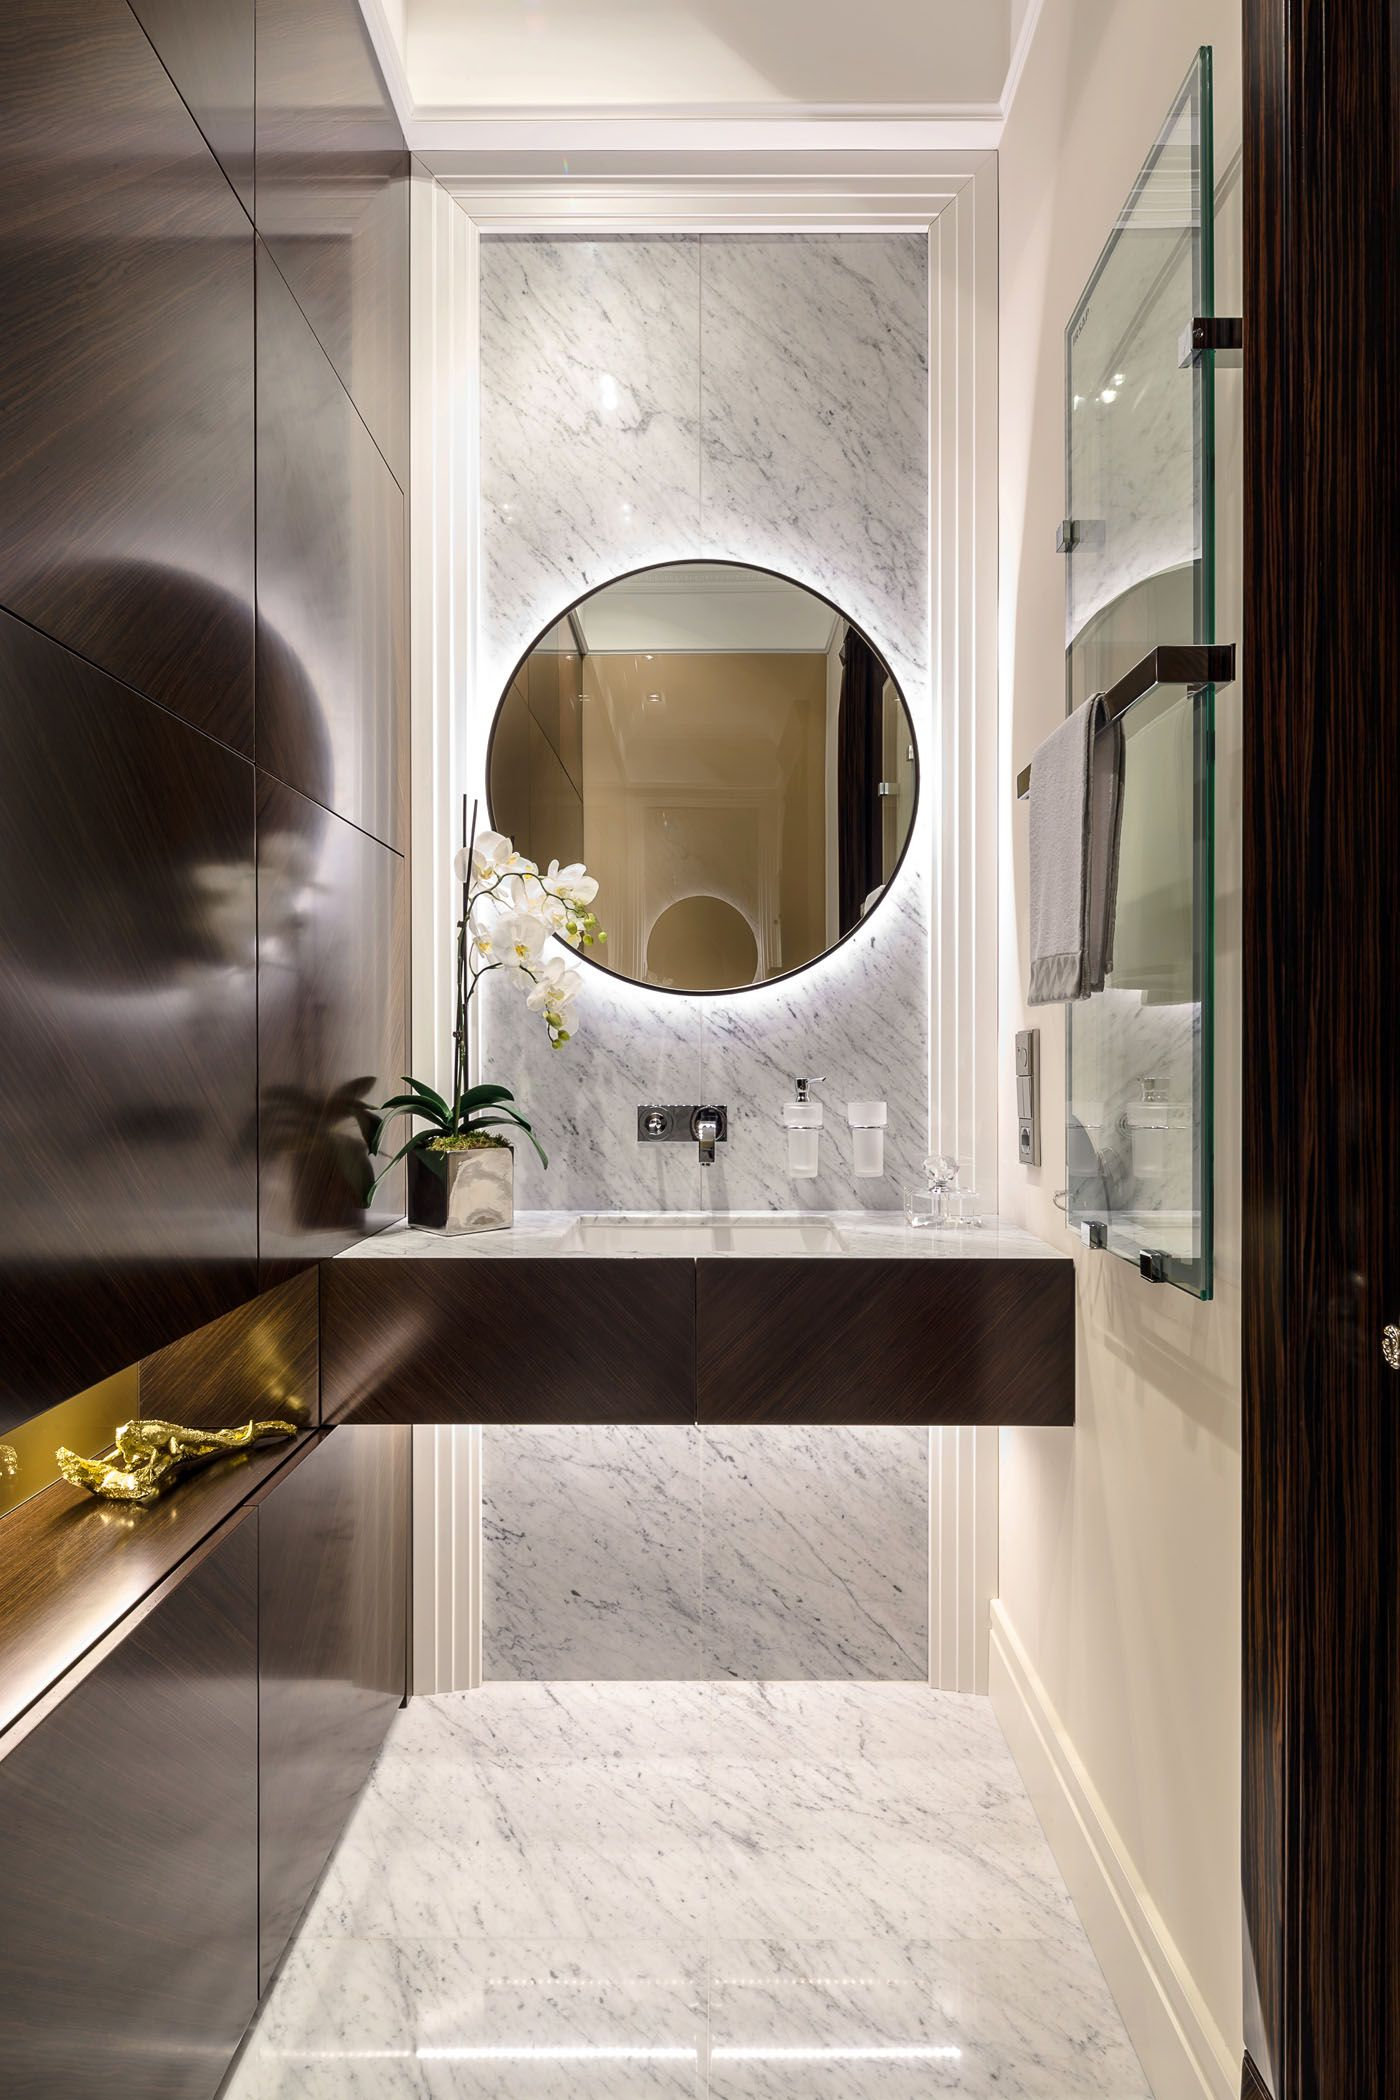 apartment in ospedaletti by ng studio bathrooms pinterest badezimmer g ste wc und b der. Black Bedroom Furniture Sets. Home Design Ideas